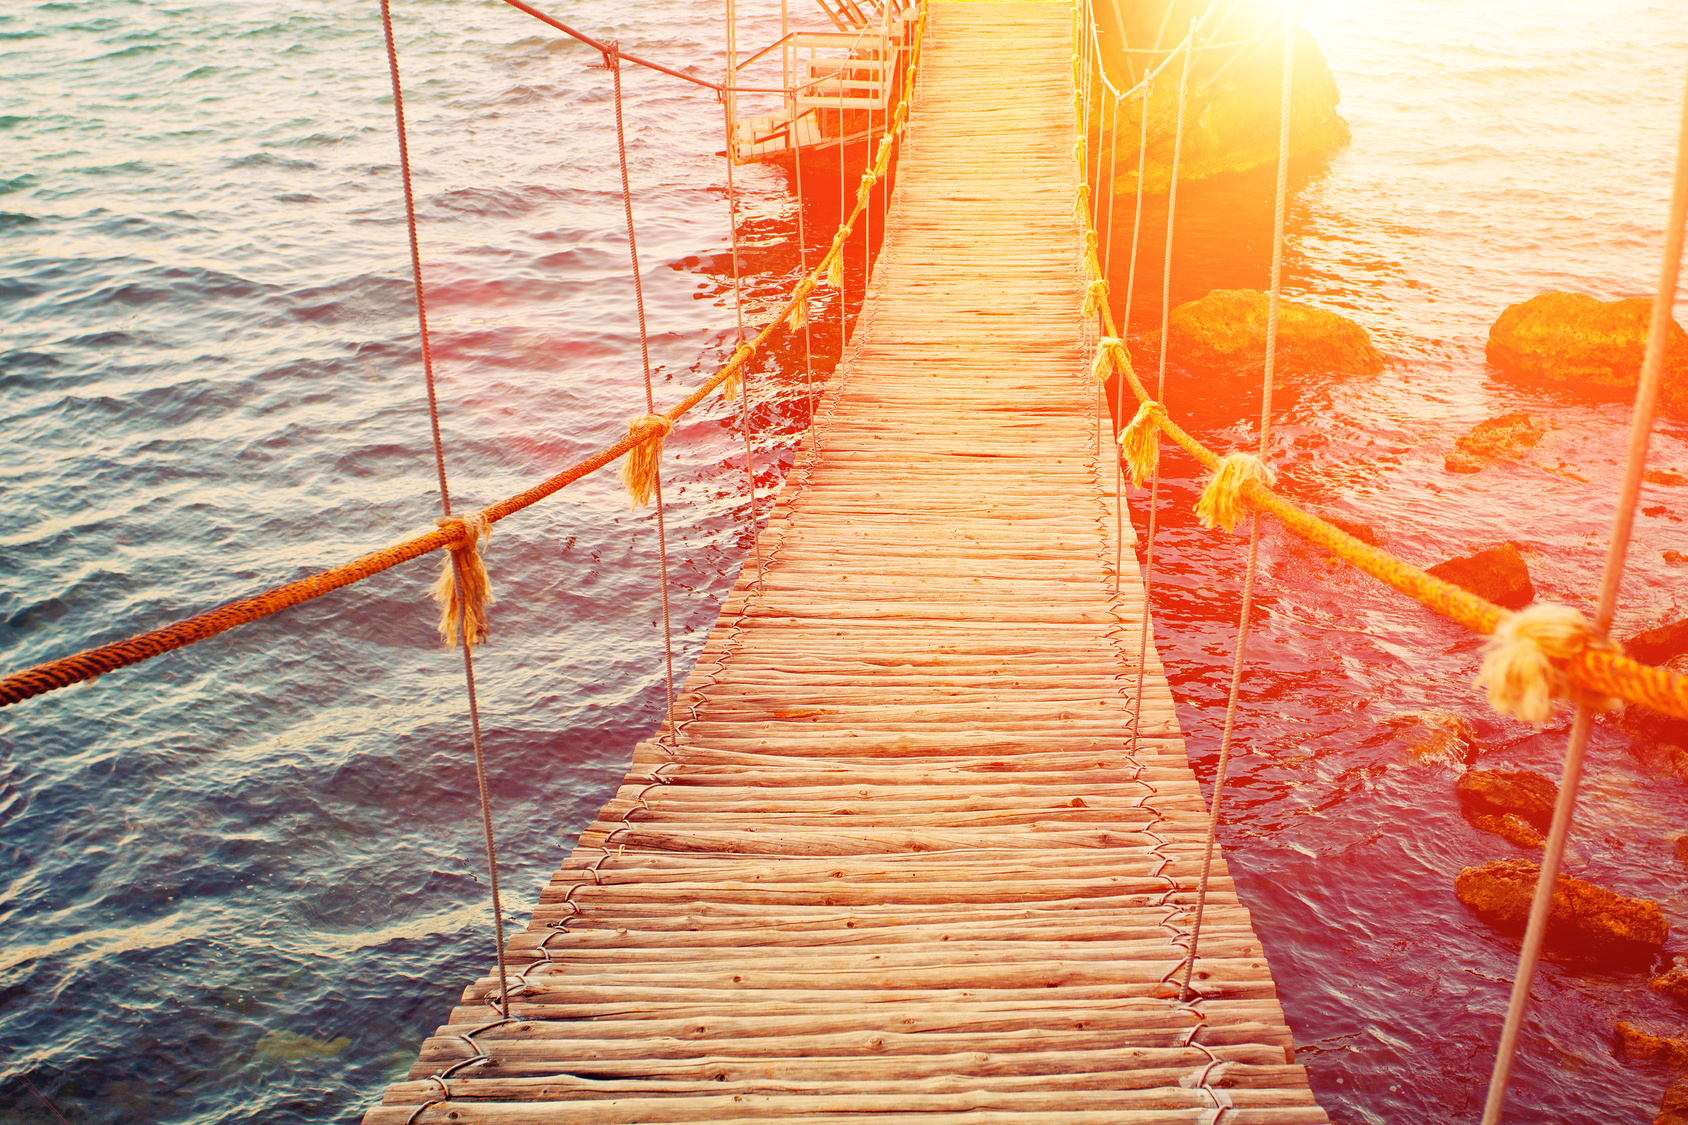 Rope bridge at sunset